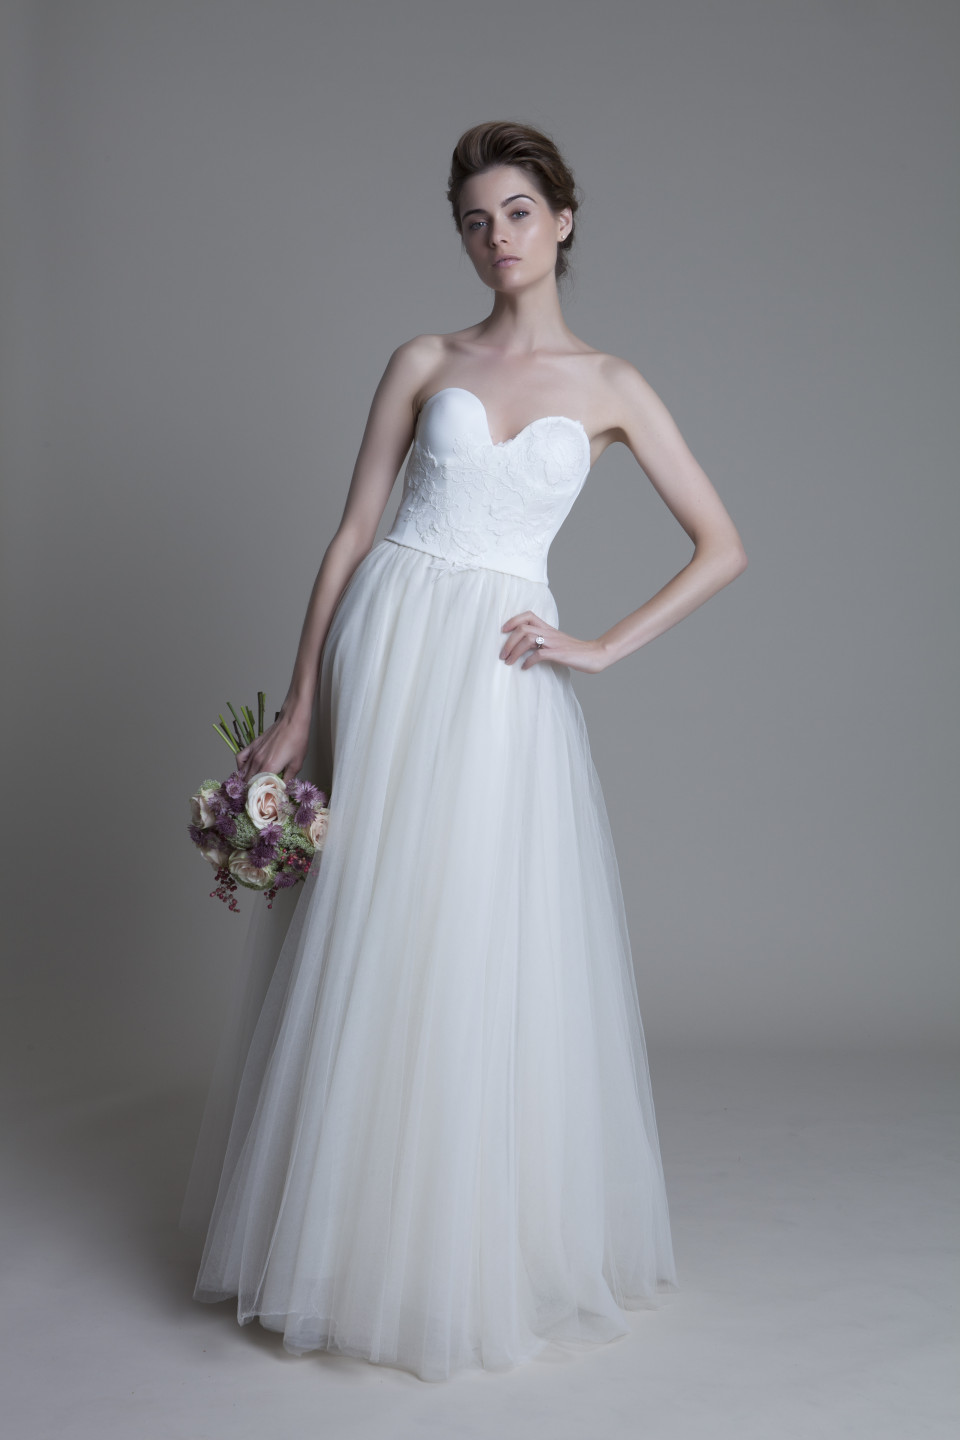 Wedding Gown Town on Feedspot - Rss Feed